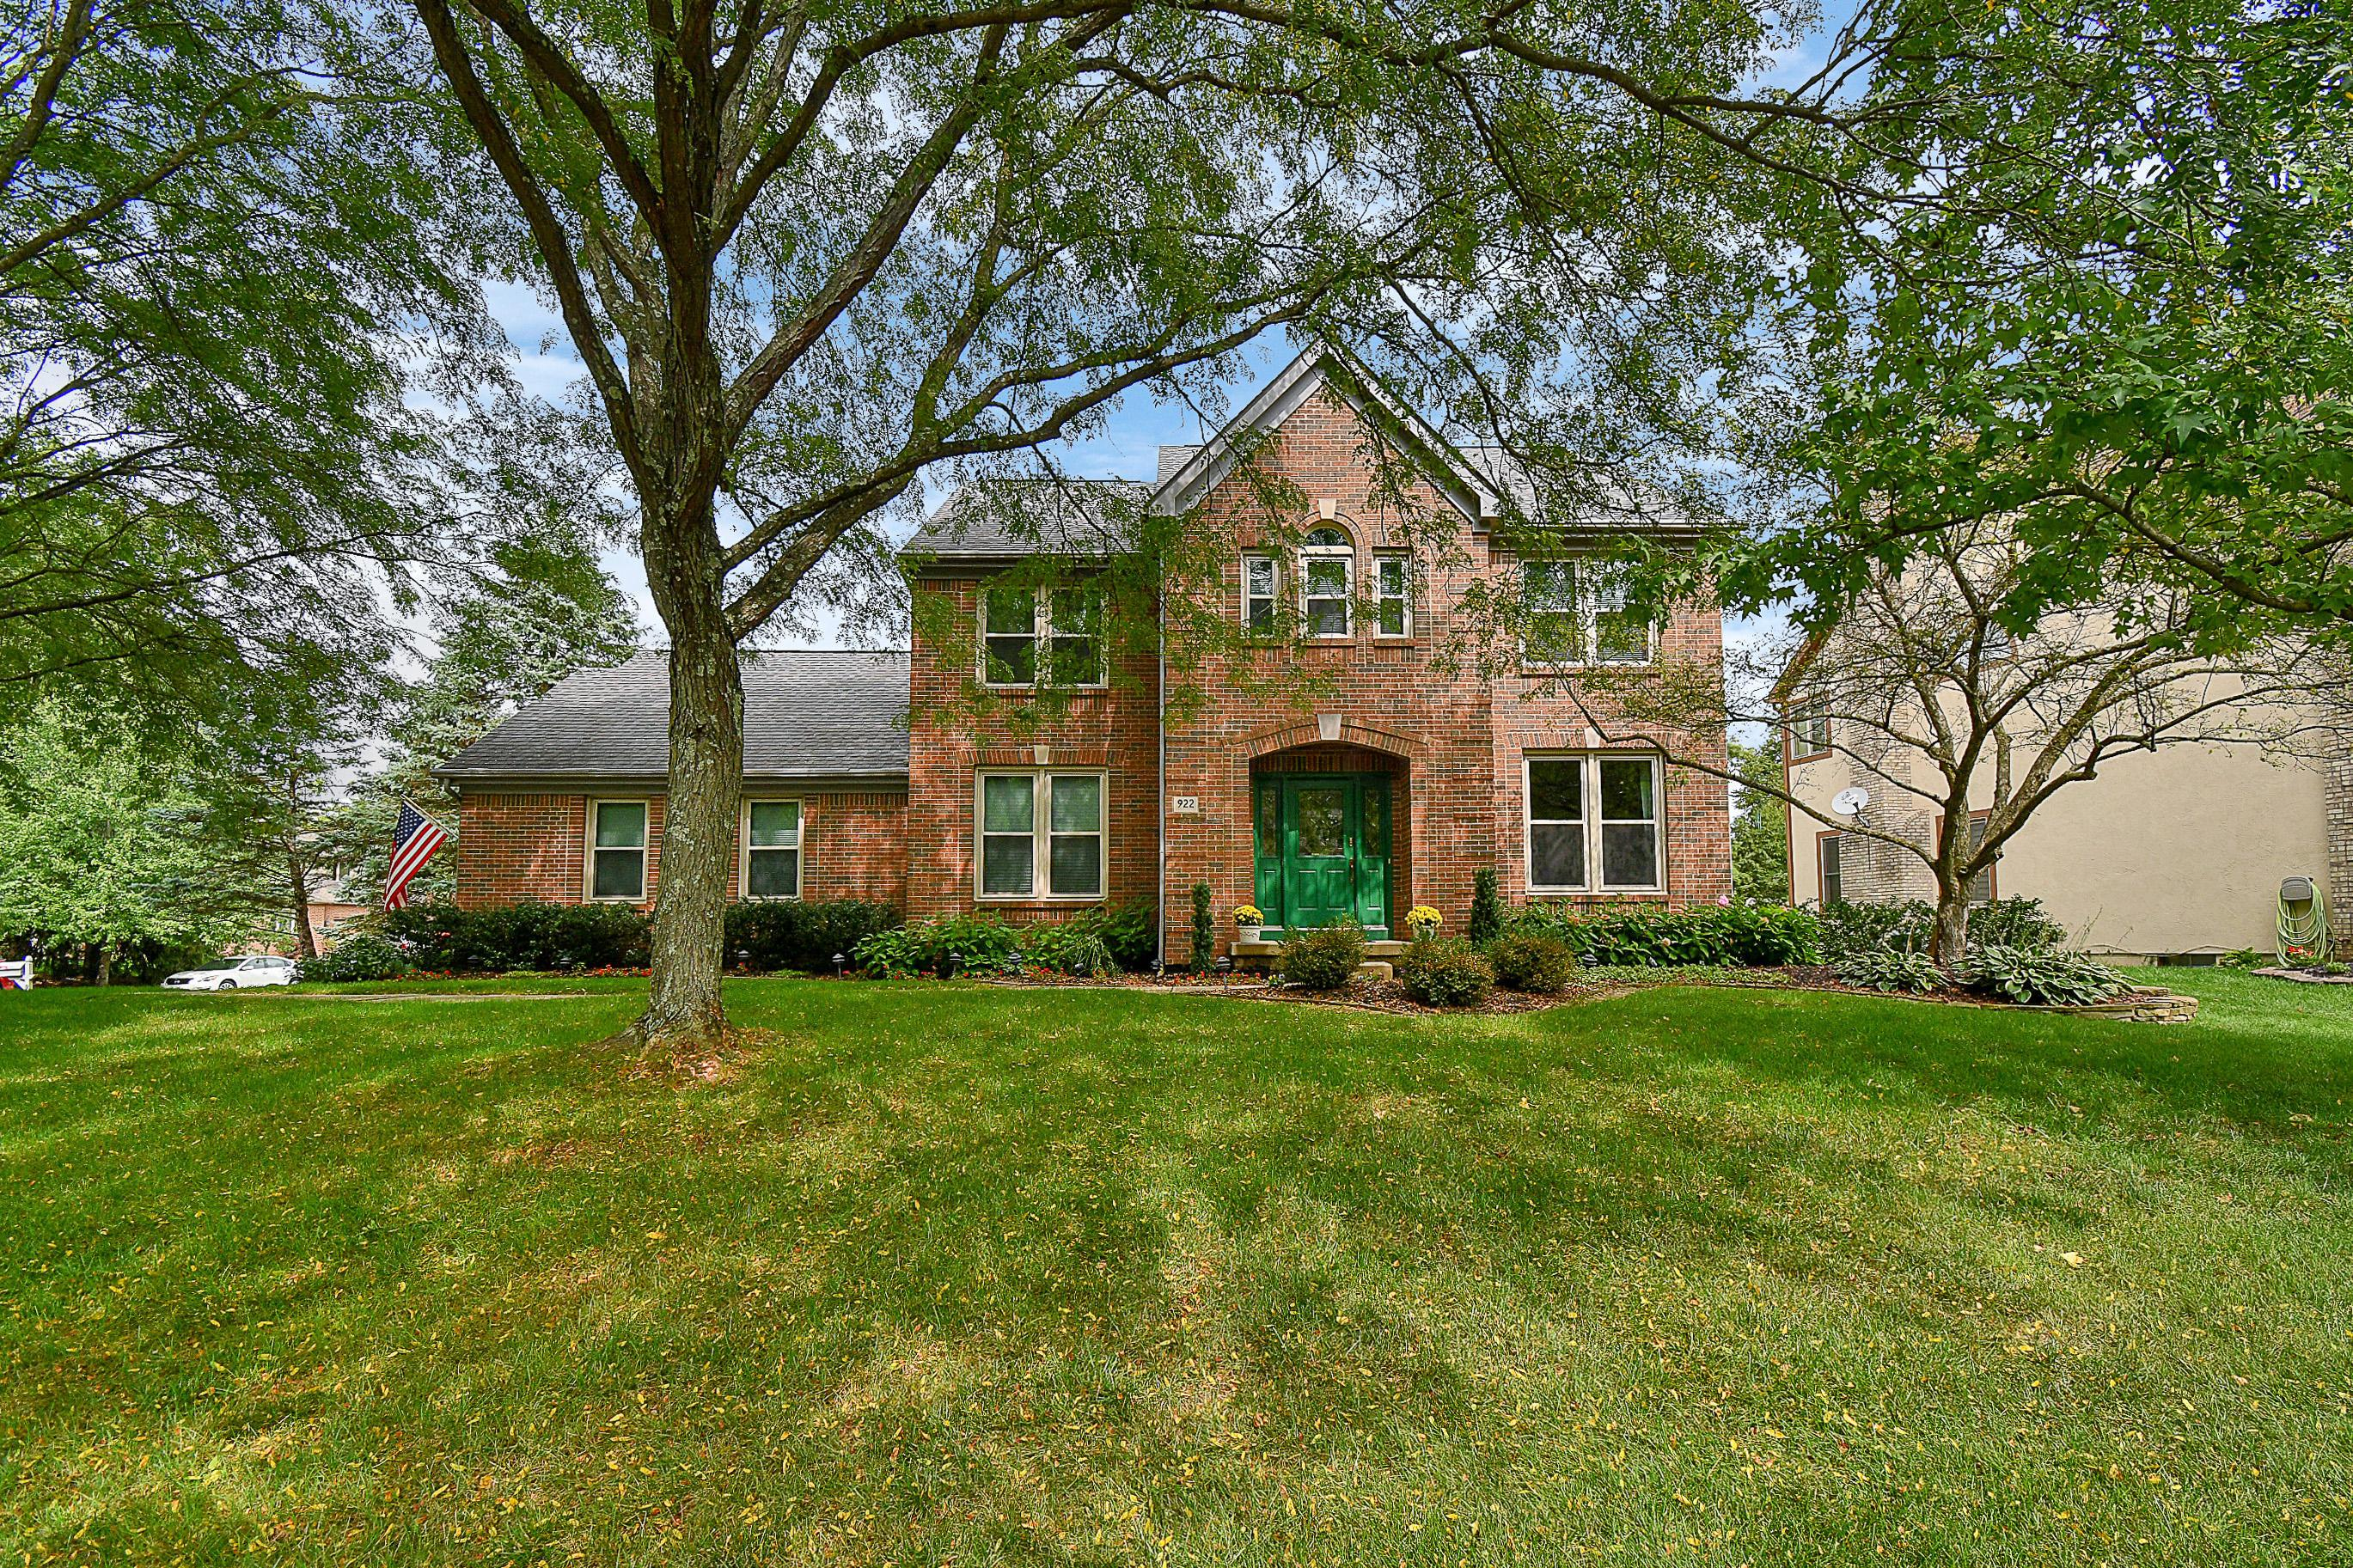 Photo of 922 Old Pine Drive, Gahanna, OH 43230